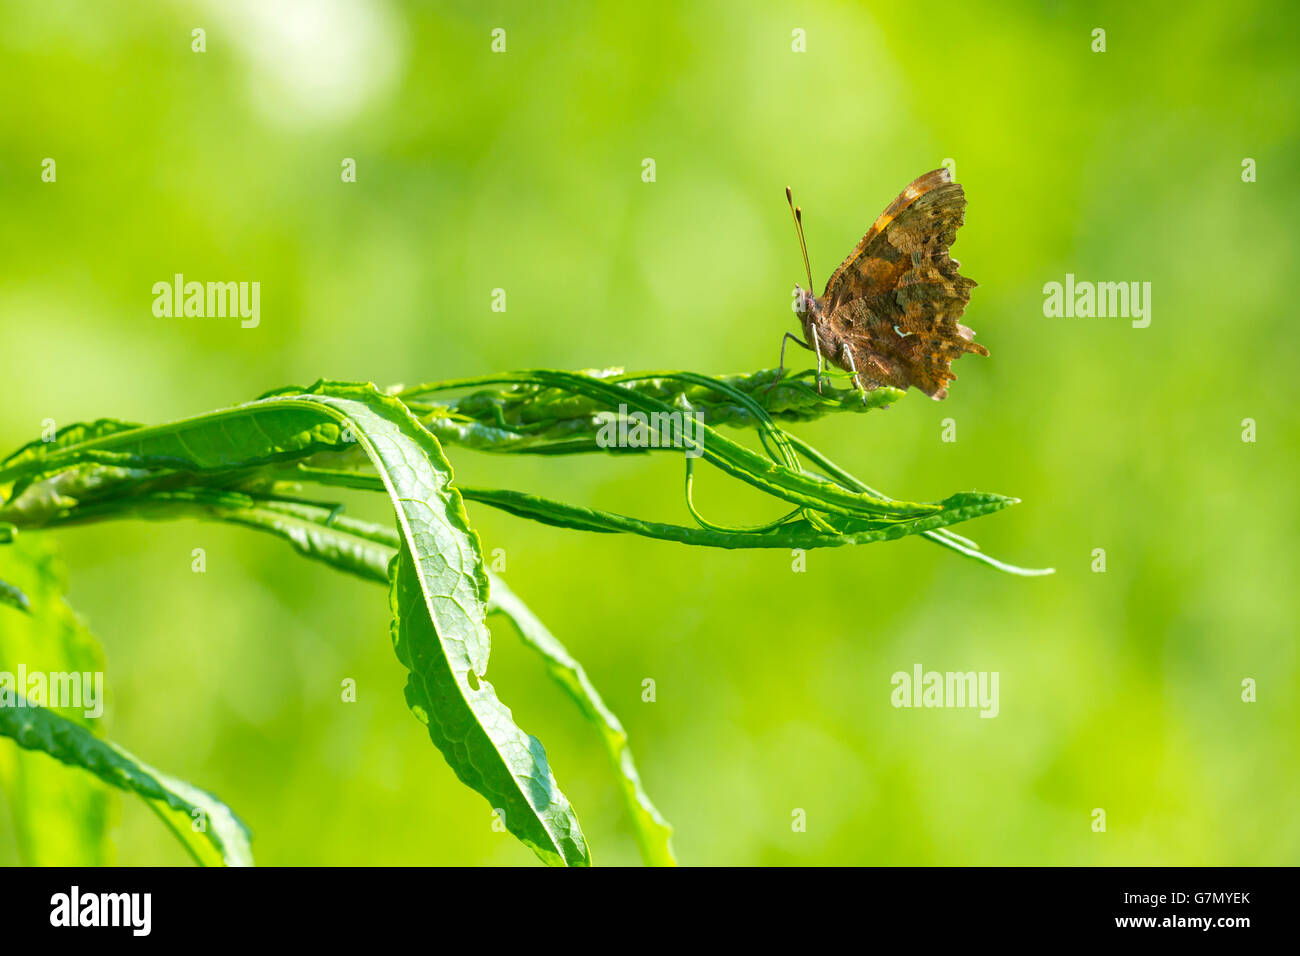 Abstract macro nature picture of a Comma butterfly (Polygonia c-album) resting on vegetation in grassland on a green - Stock Image